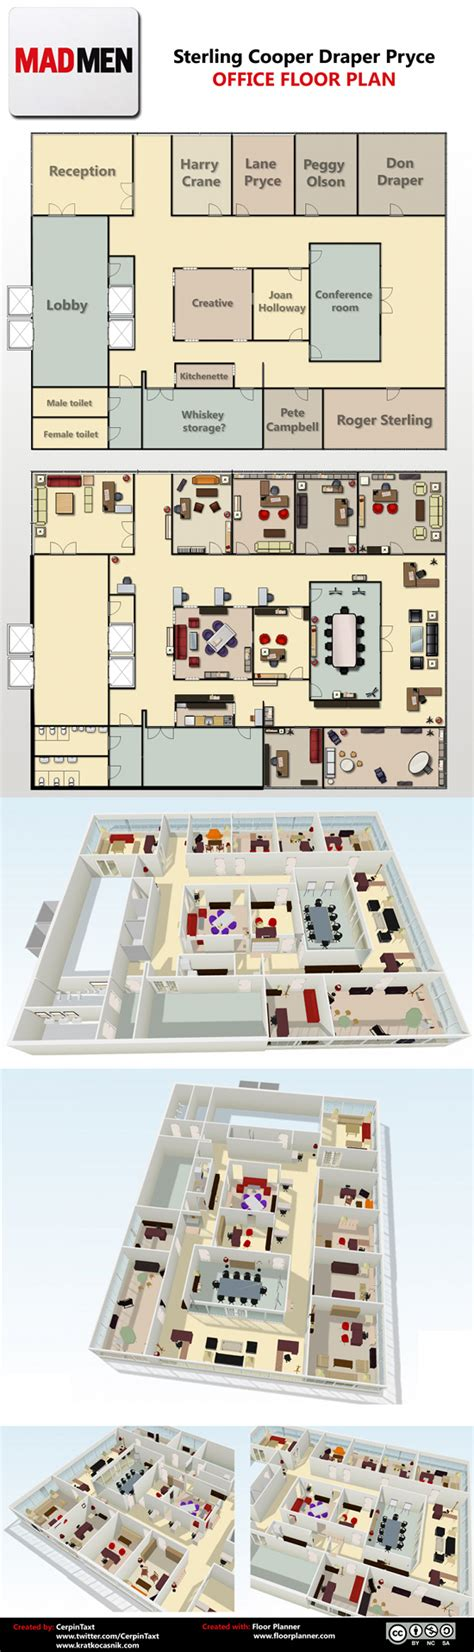 Mad Men Floor Plan | mad men office floor plan